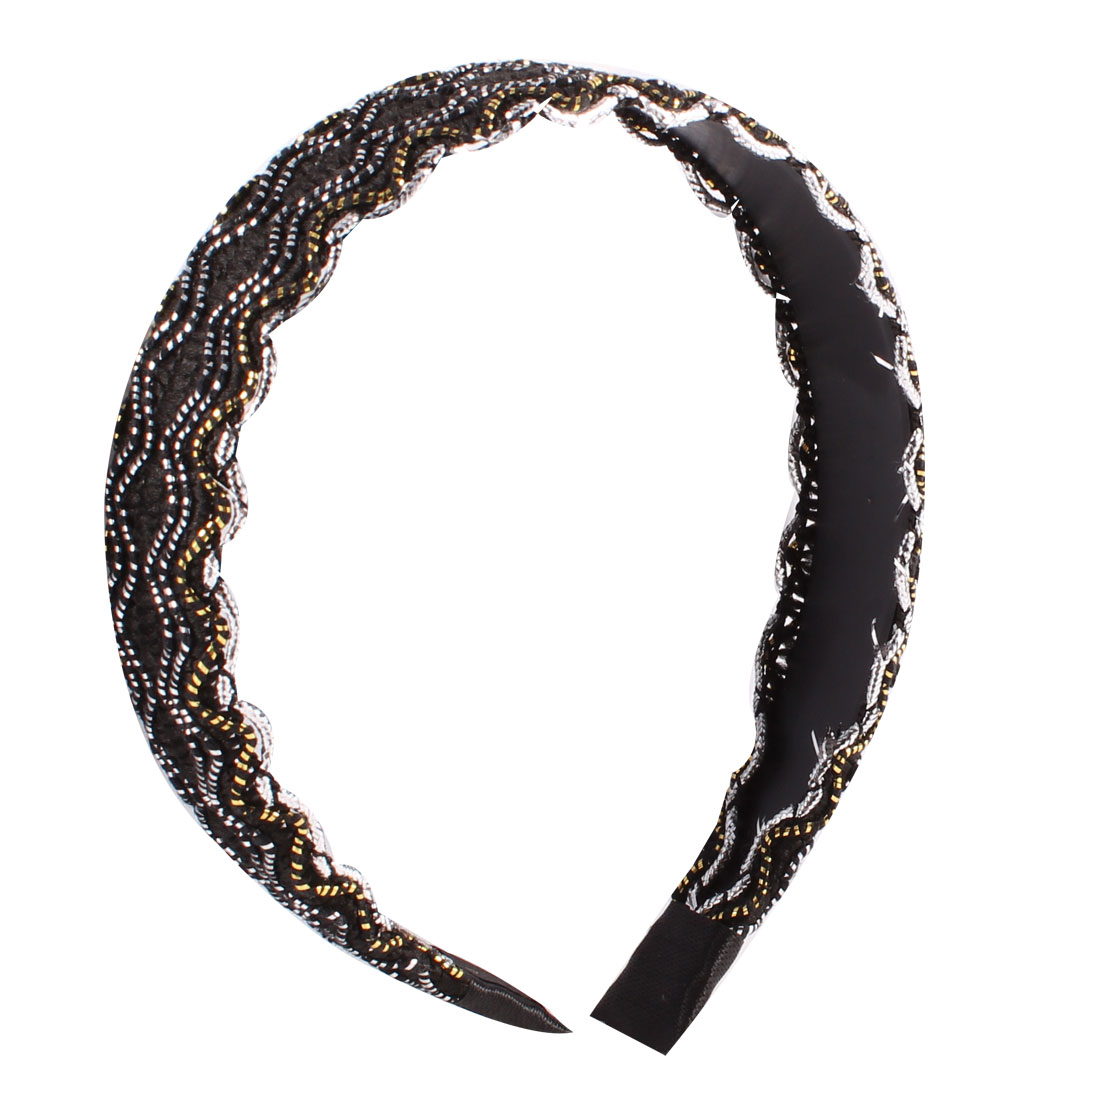 Silver Tone Black Nylon Rope Coated Wave Pattern Hair Hoop Hairband 3CM Width